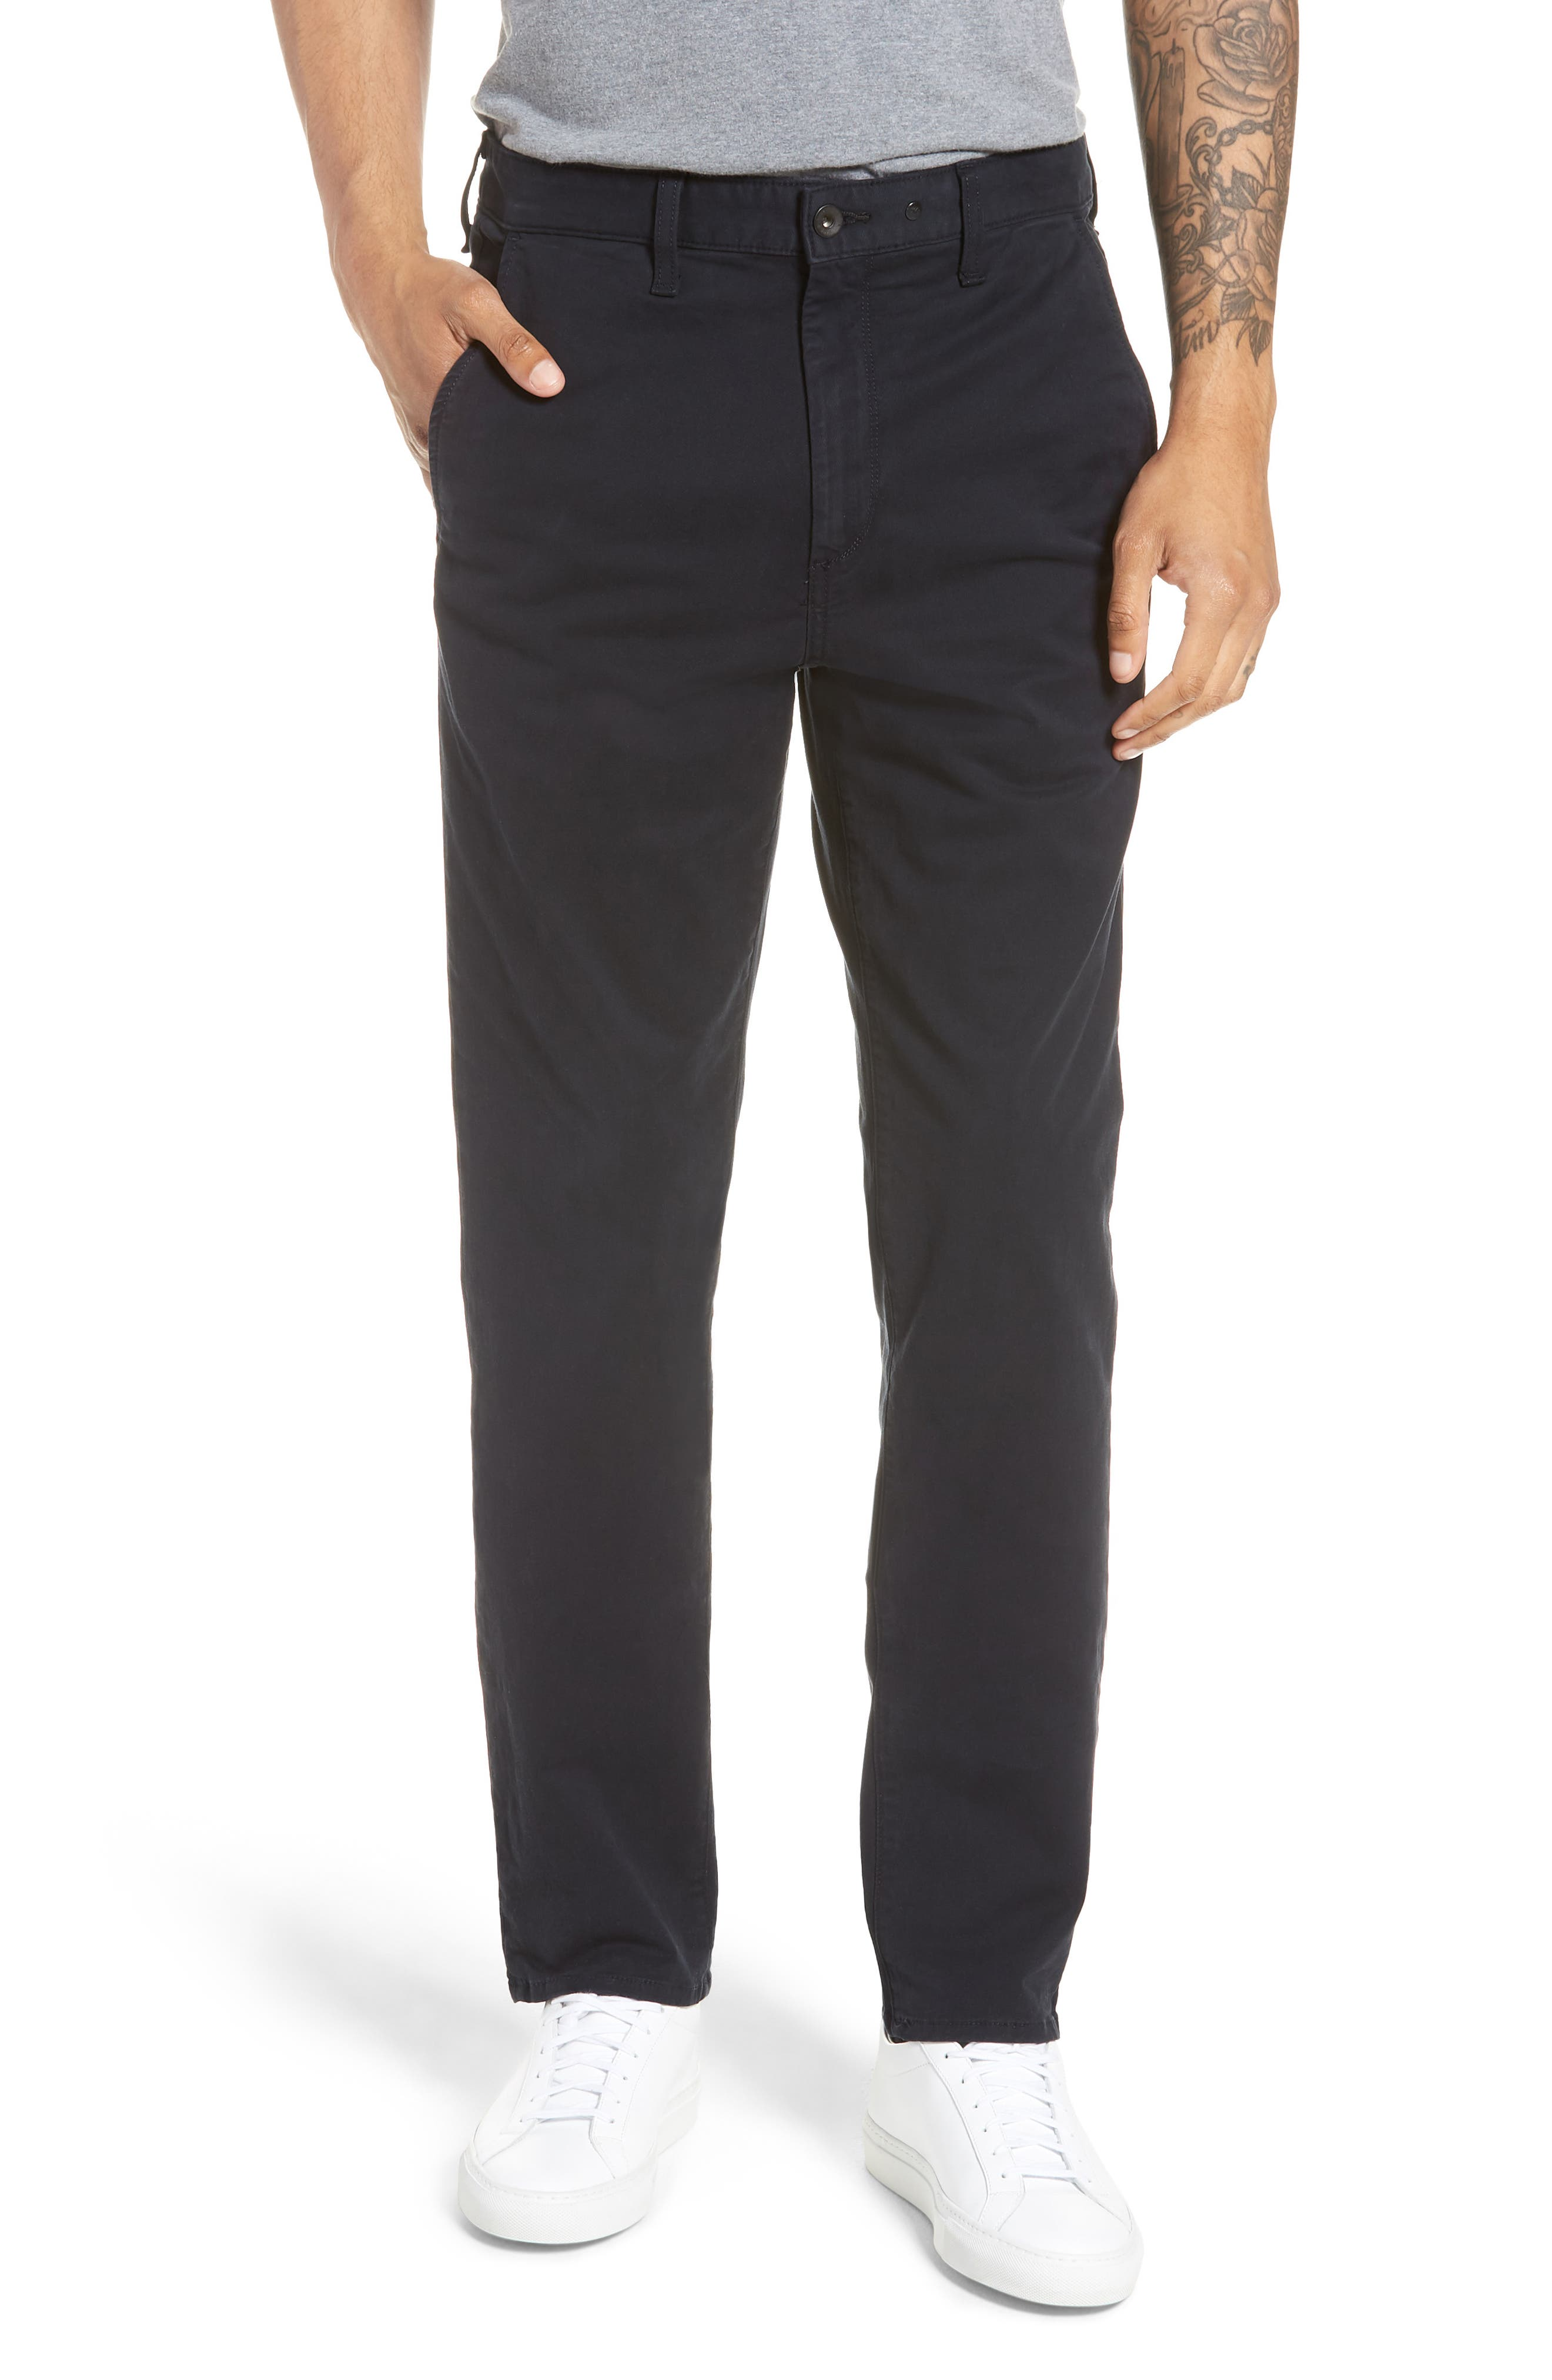 Fit 3 Classic Chino,                             Main thumbnail 1, color,                             NAVY